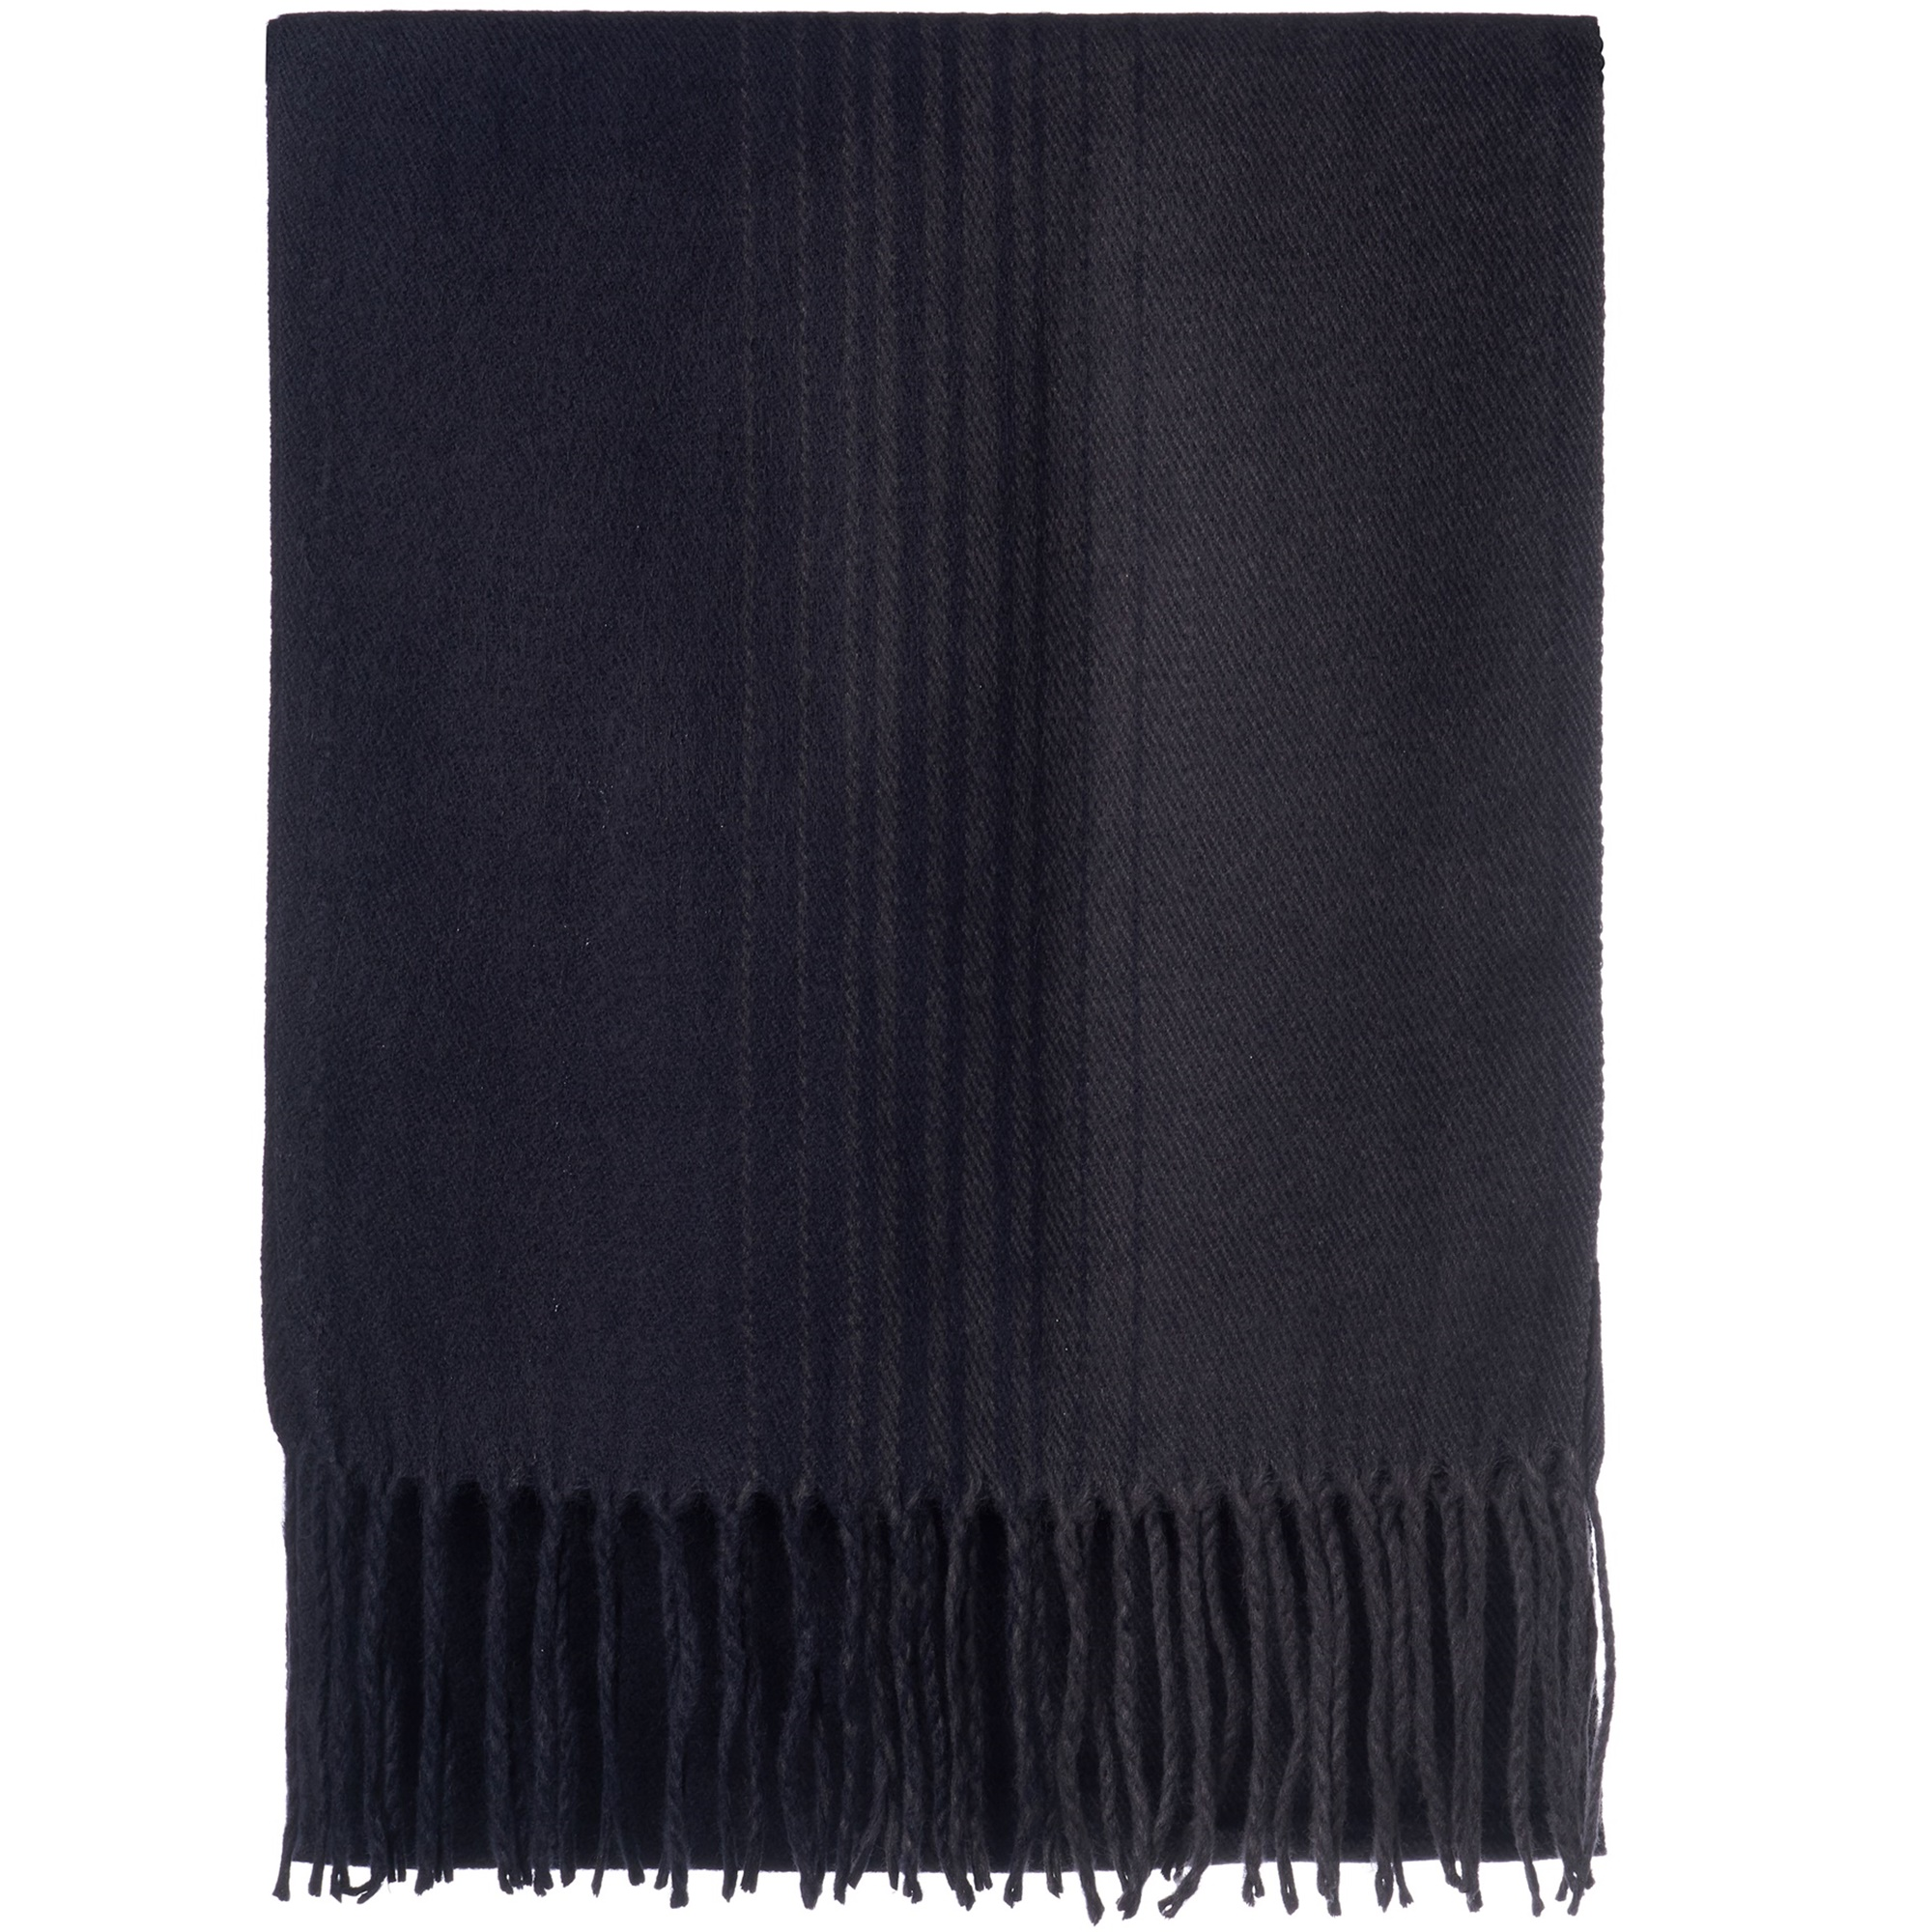 Hammer-Anvil-Mens-Plaid-Striped-Scarf-Womens-Winter-Scarves-Cashmere-Soft-Feel thumbnail 20